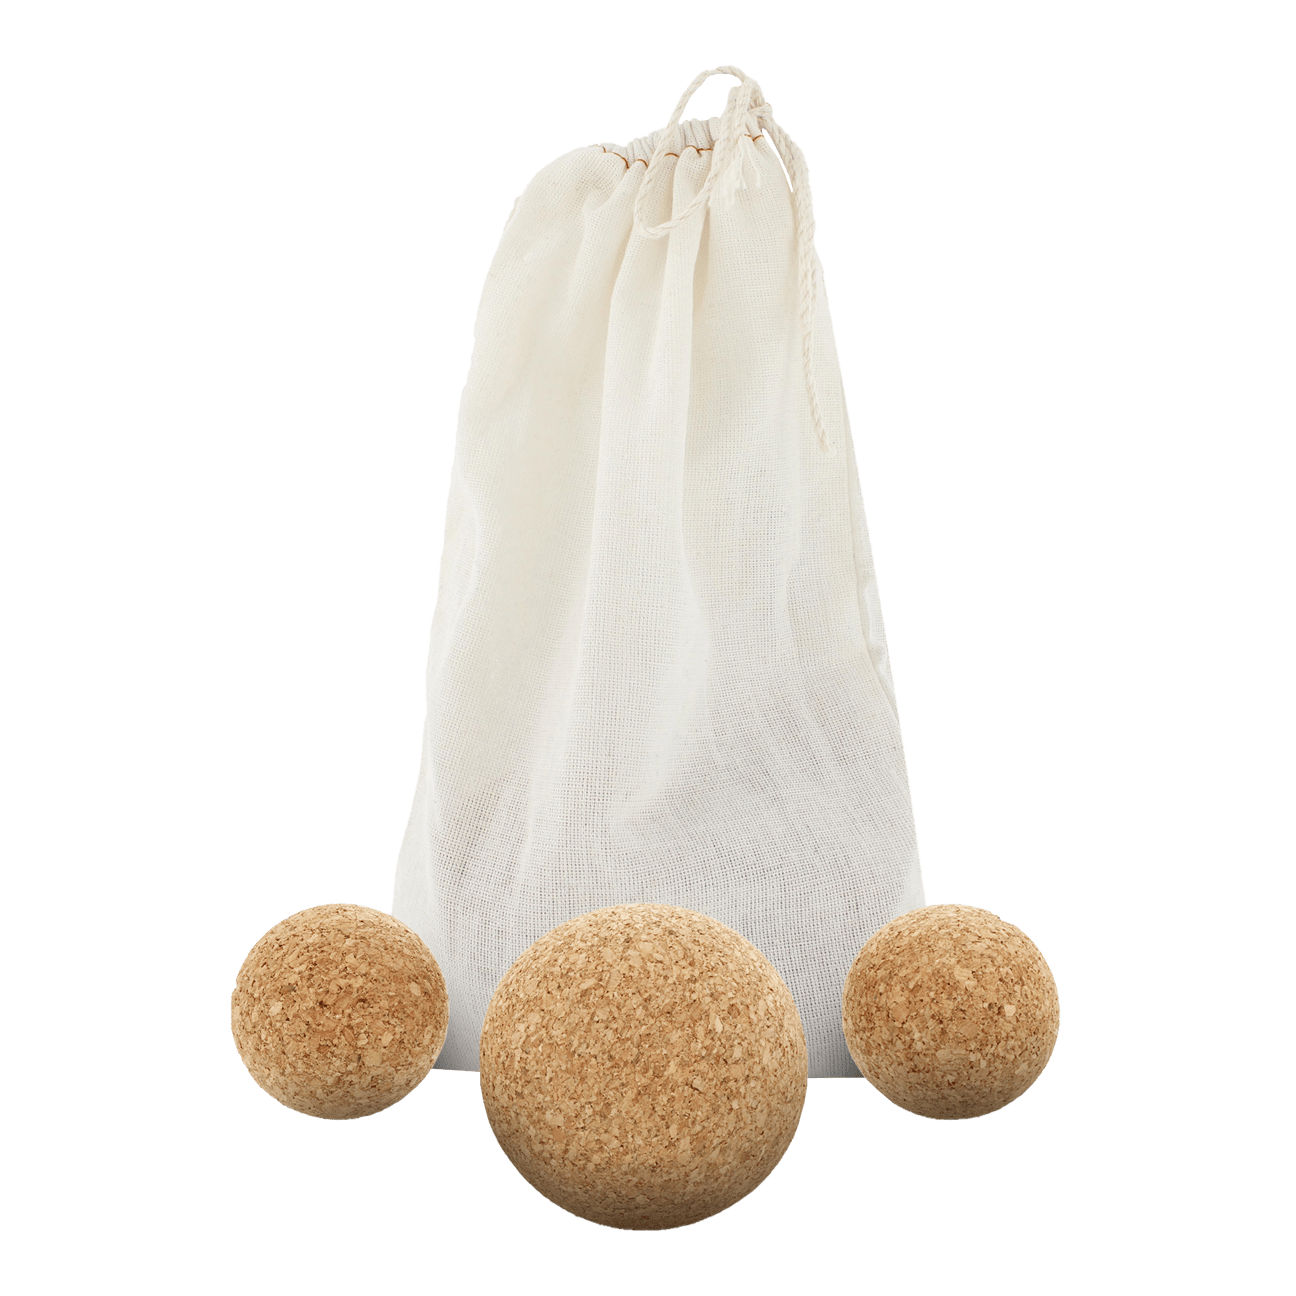 Set of 3 natural cork massage balls in a cotton carrying bag. Set contains 1 large massage ball (3-inch) and 2 small massage balls (2-inch).